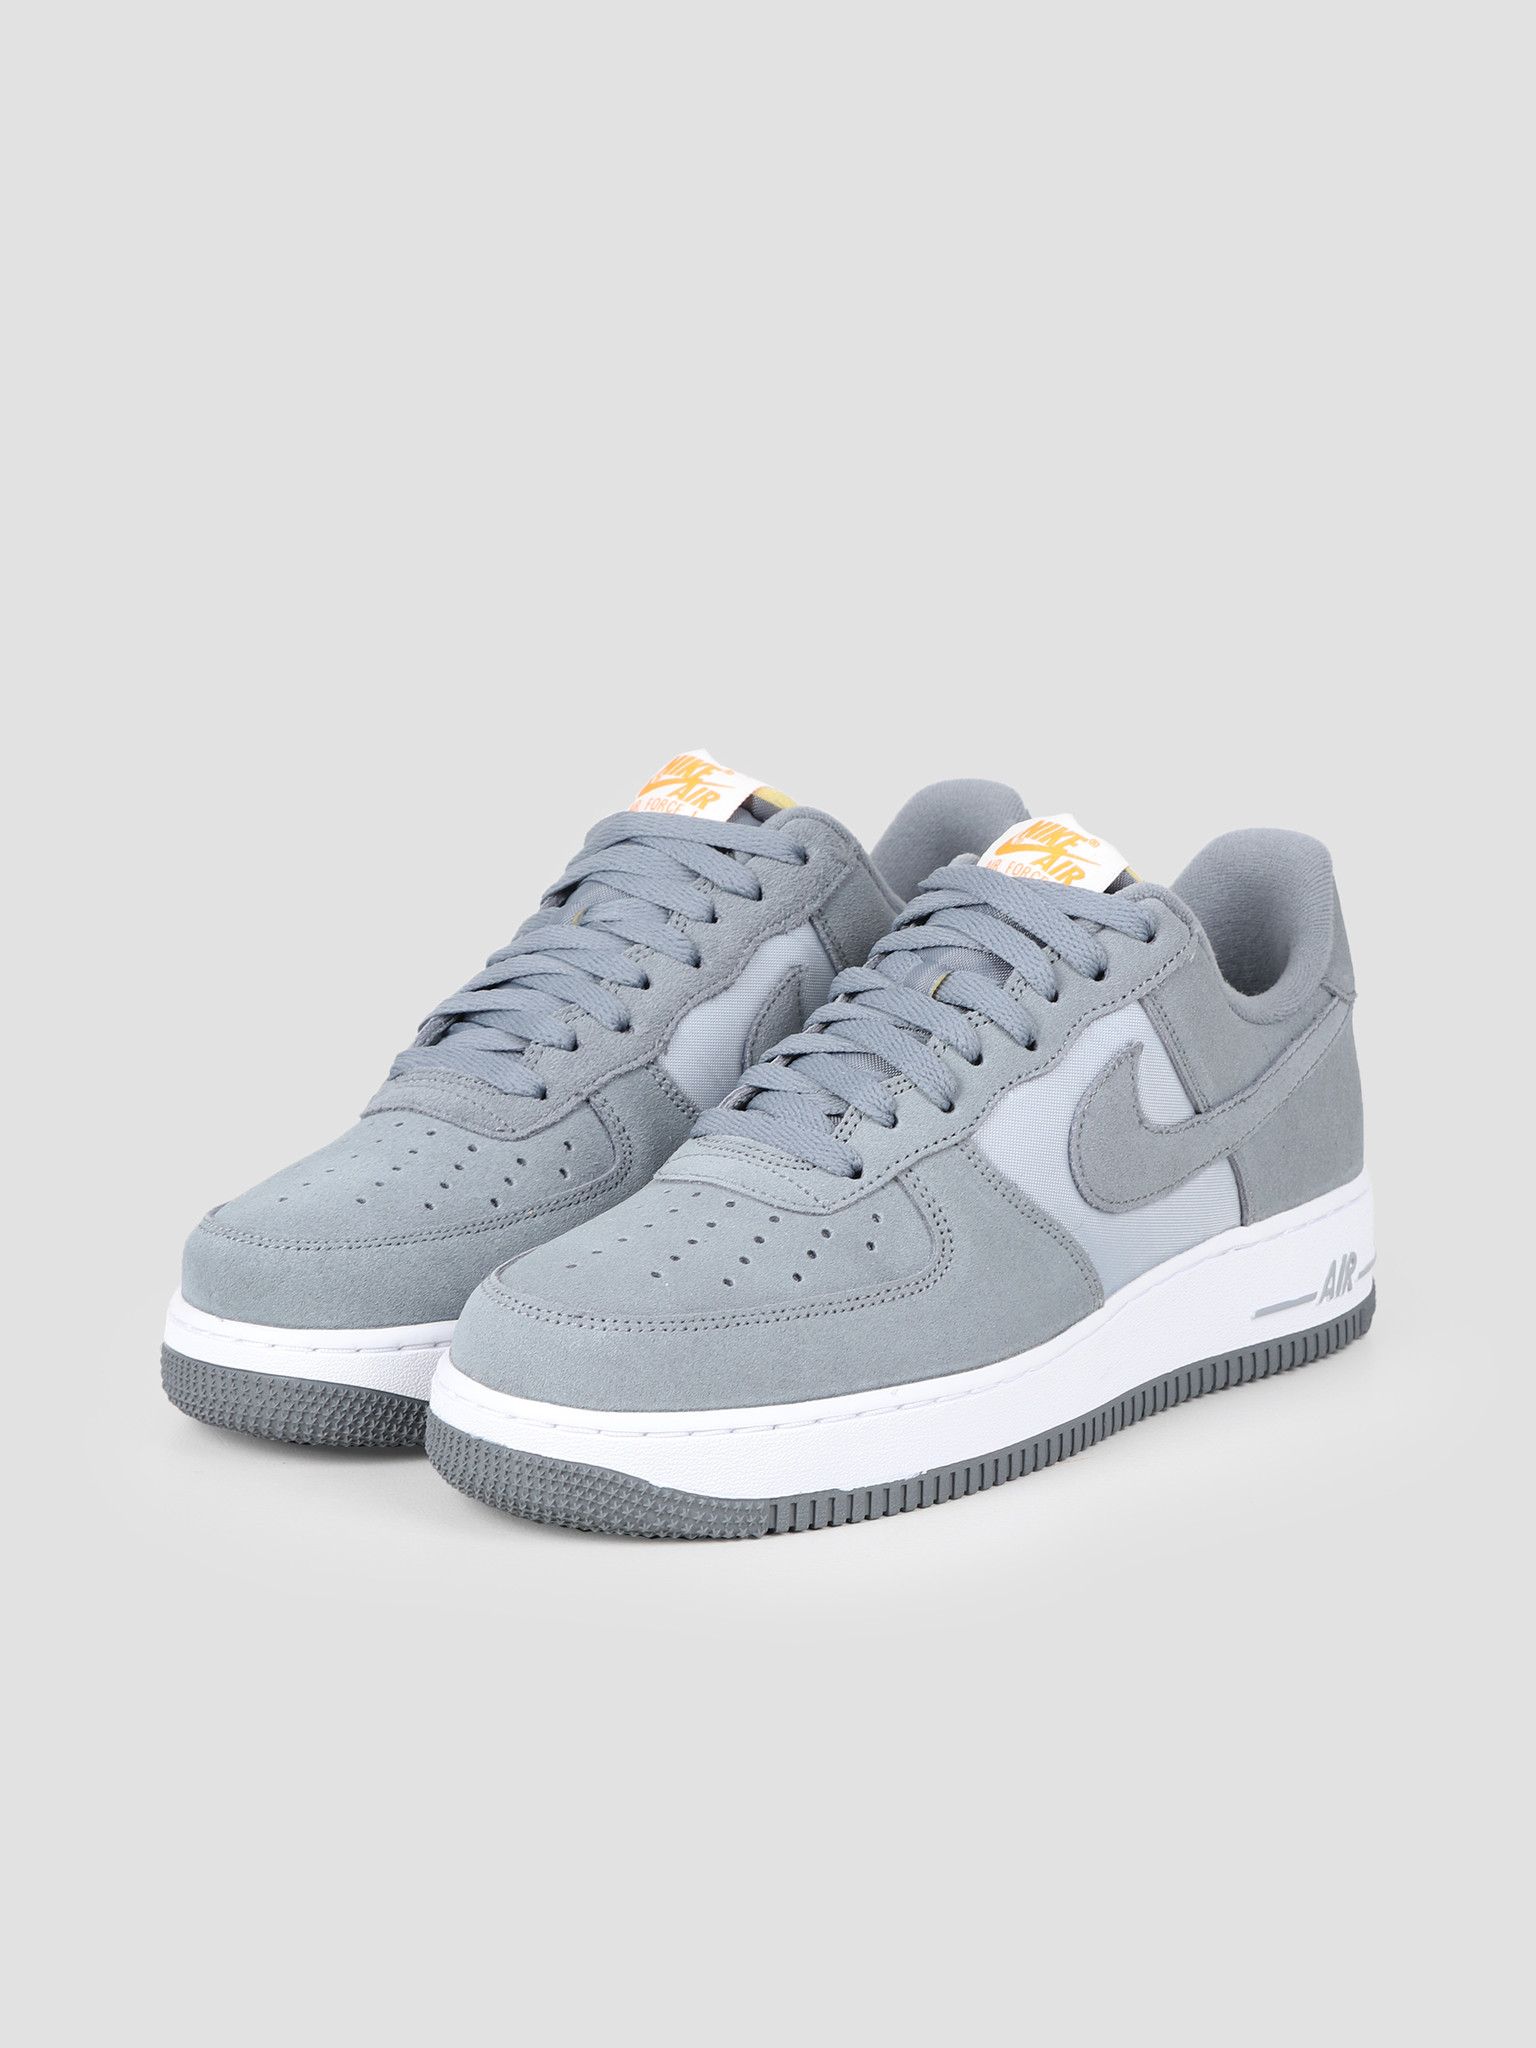 Nike Nike Air Force 1 07 Lv8 Cool Grey Cool Grey Bright Ceramic White CI2677-002